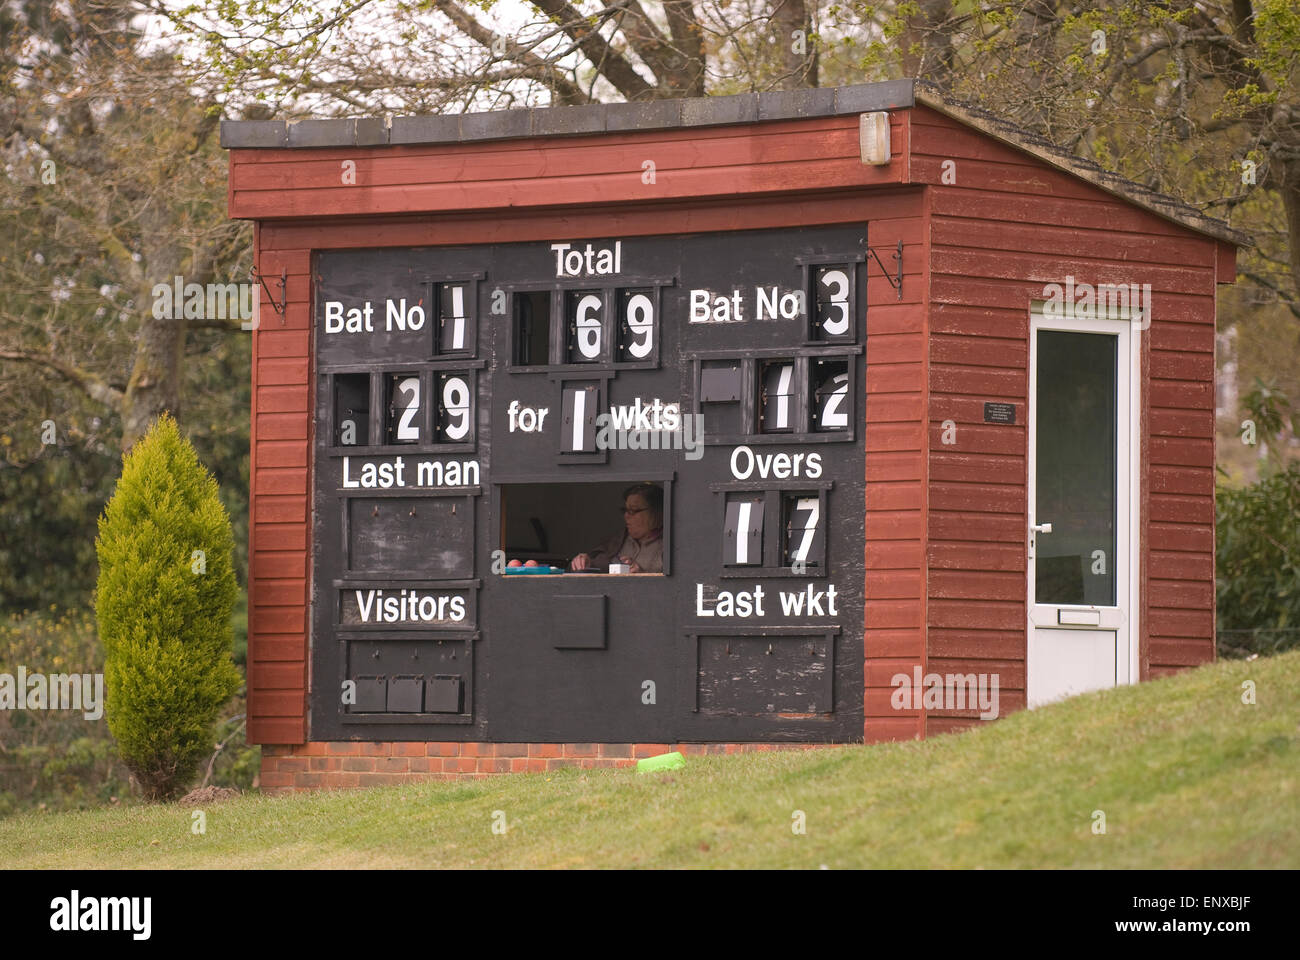 Cricket scorer and board during a local village green match, Liphook, Hampshire, UK. Stock Photo